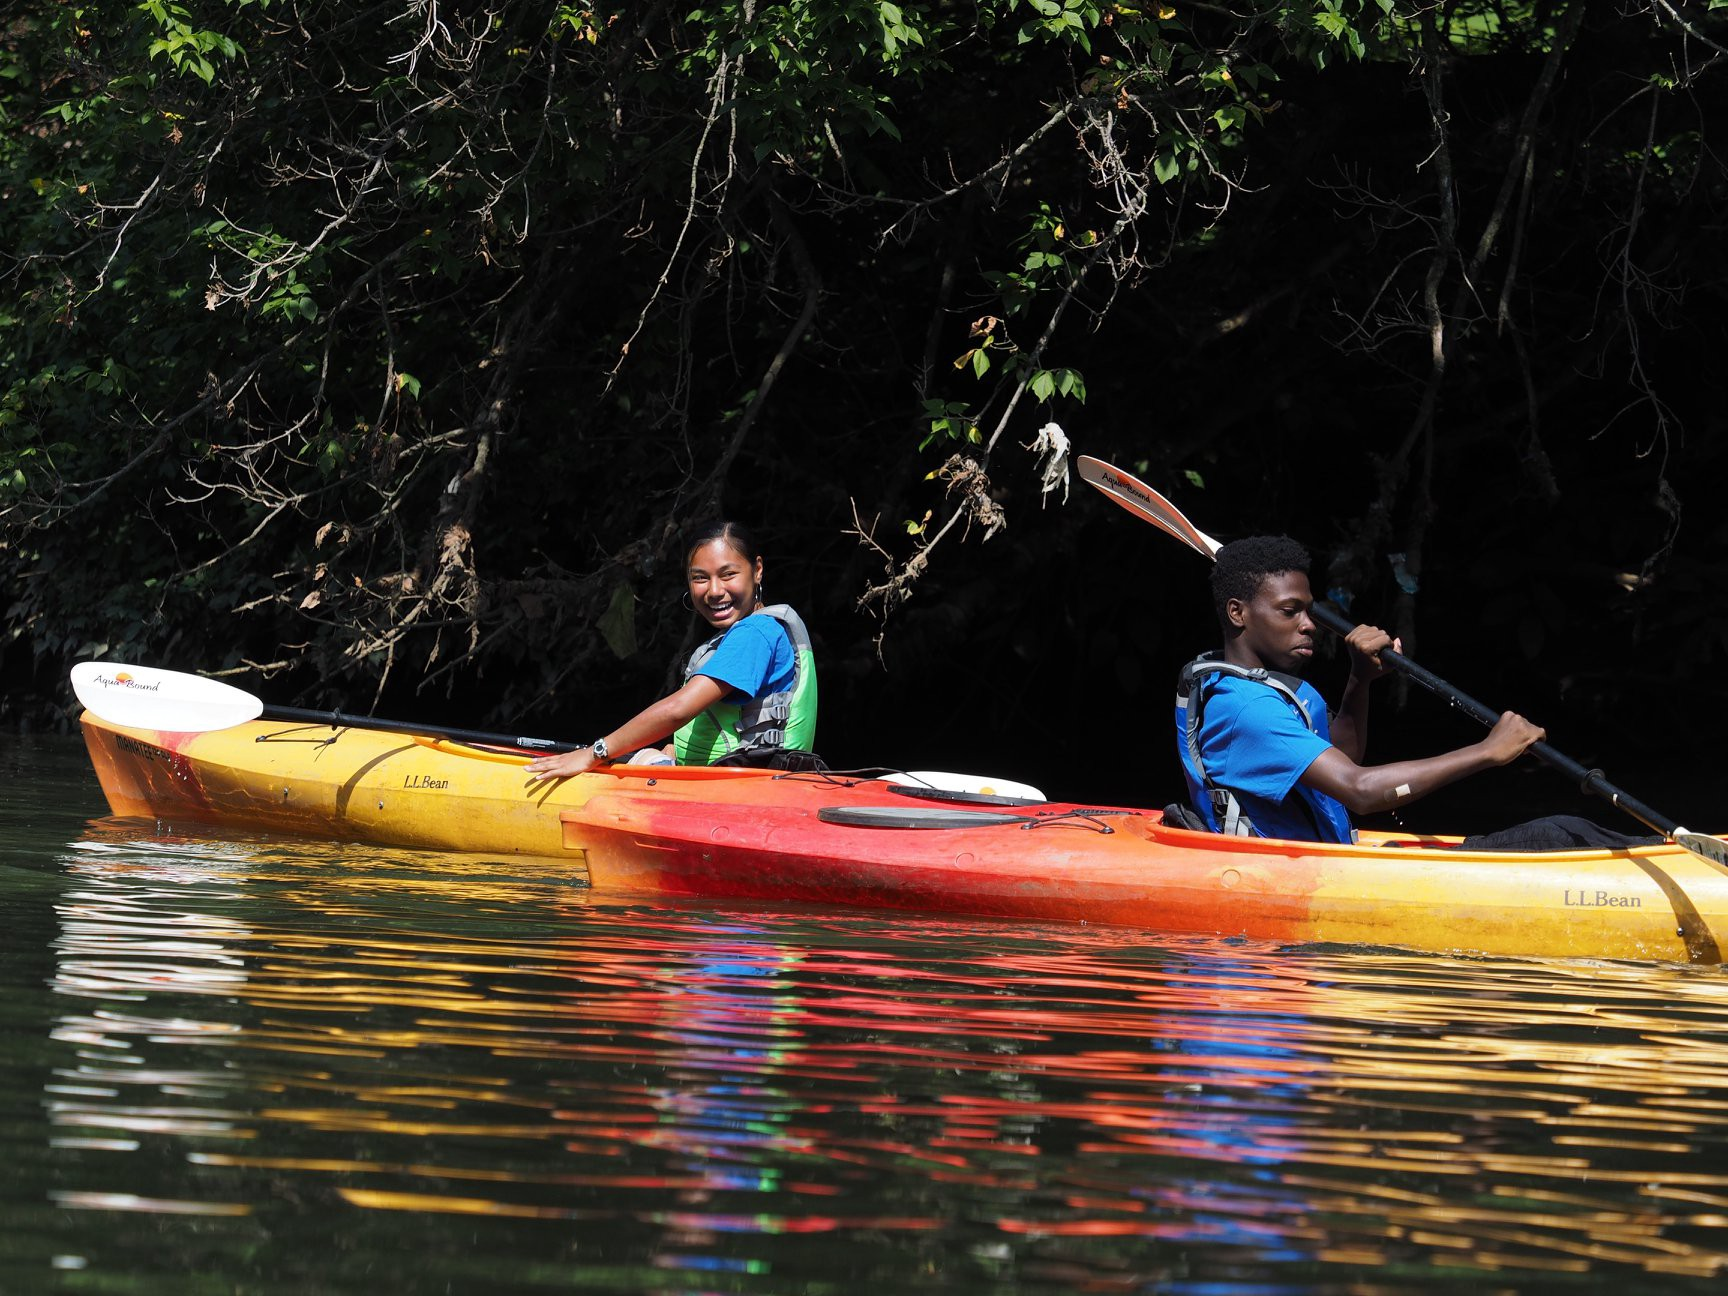 2 Kayakers near tree-filled shore